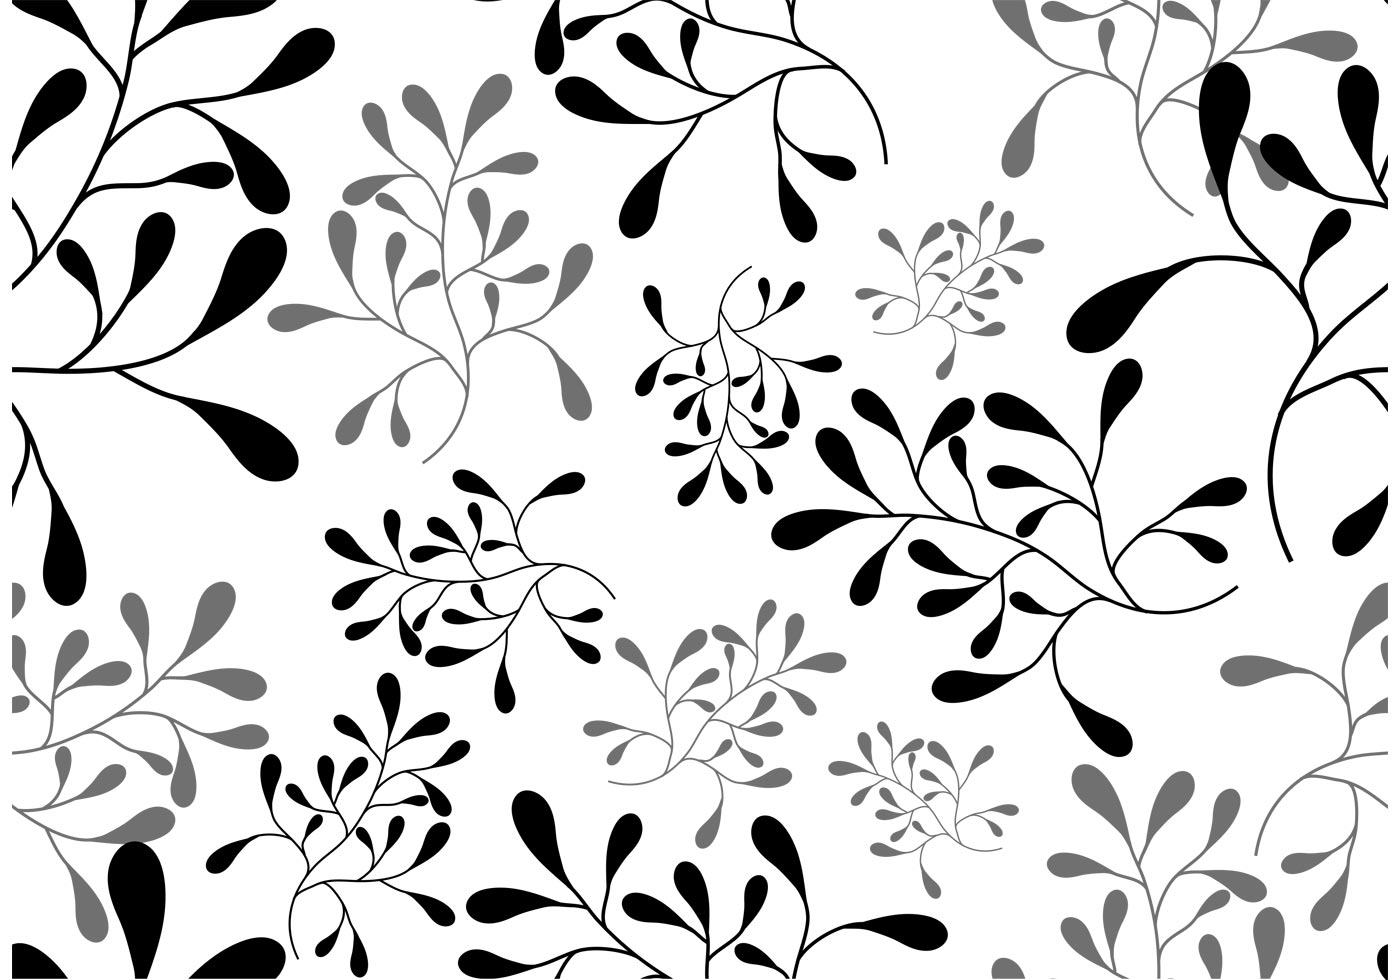 Aninimal Book: Vector Leaf Seamless Pattern - Download Free Vectors ...